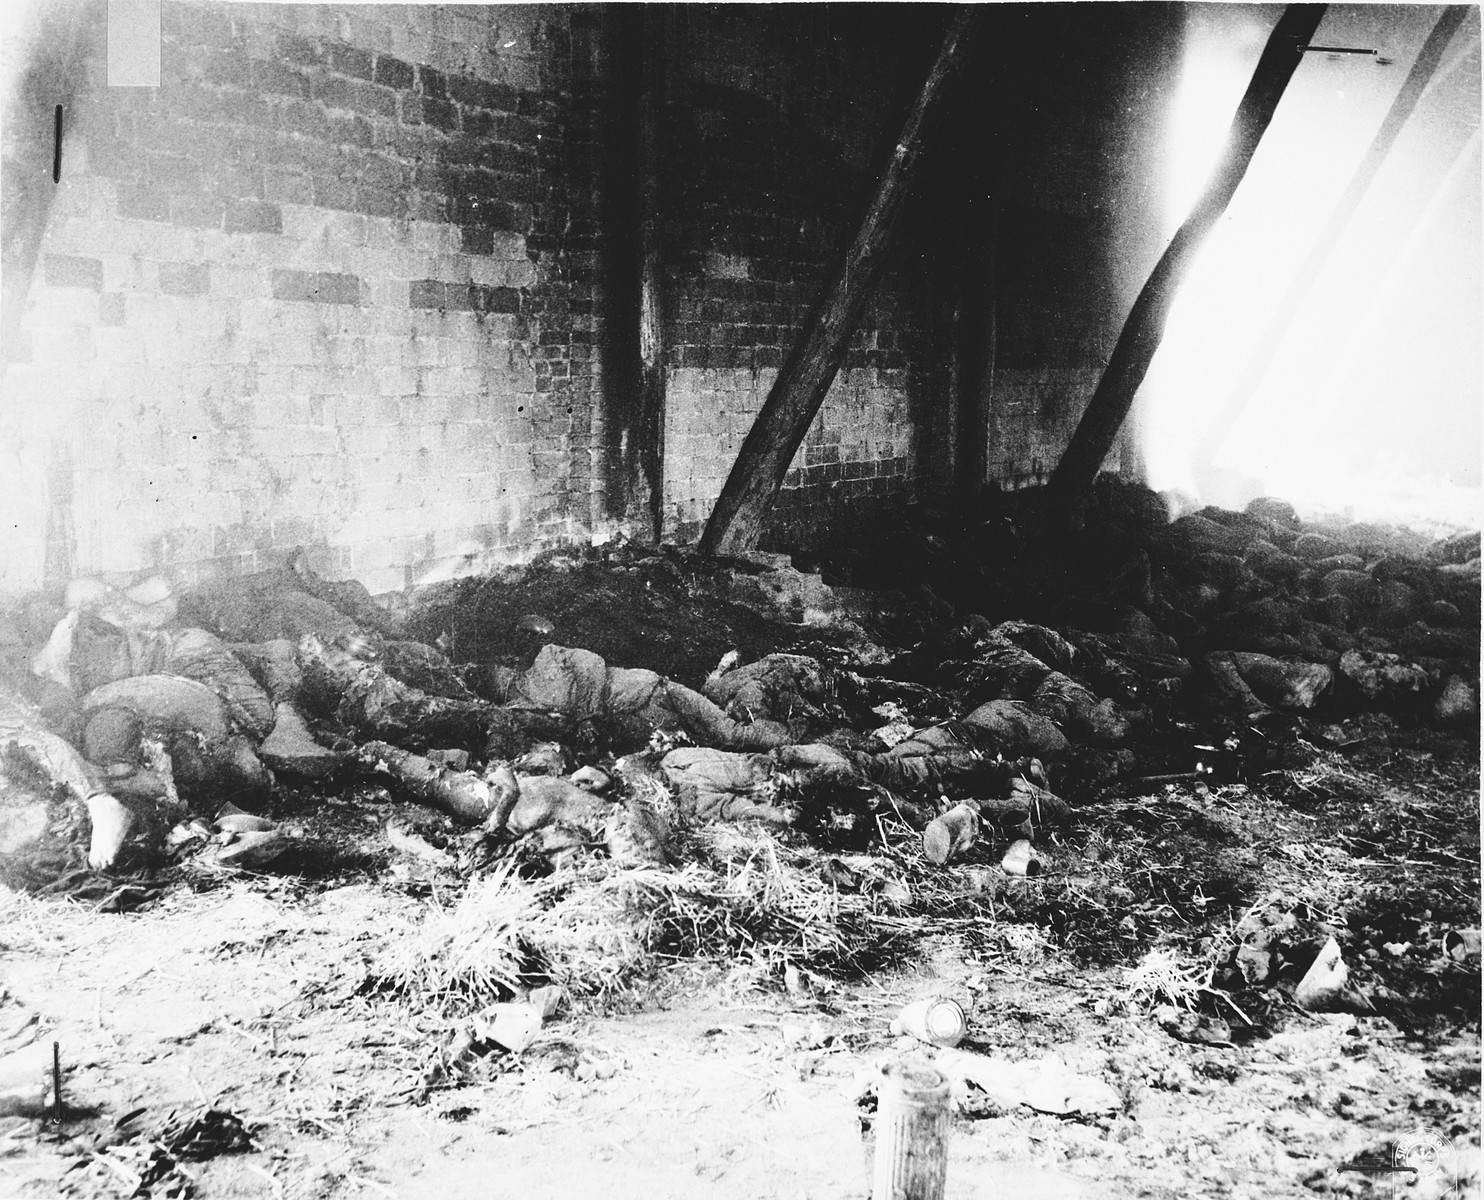 Corpses of prisoners lie near the inside south wall of the barn outside of Gardelegen where over 1,000 prisoners were burned alive.